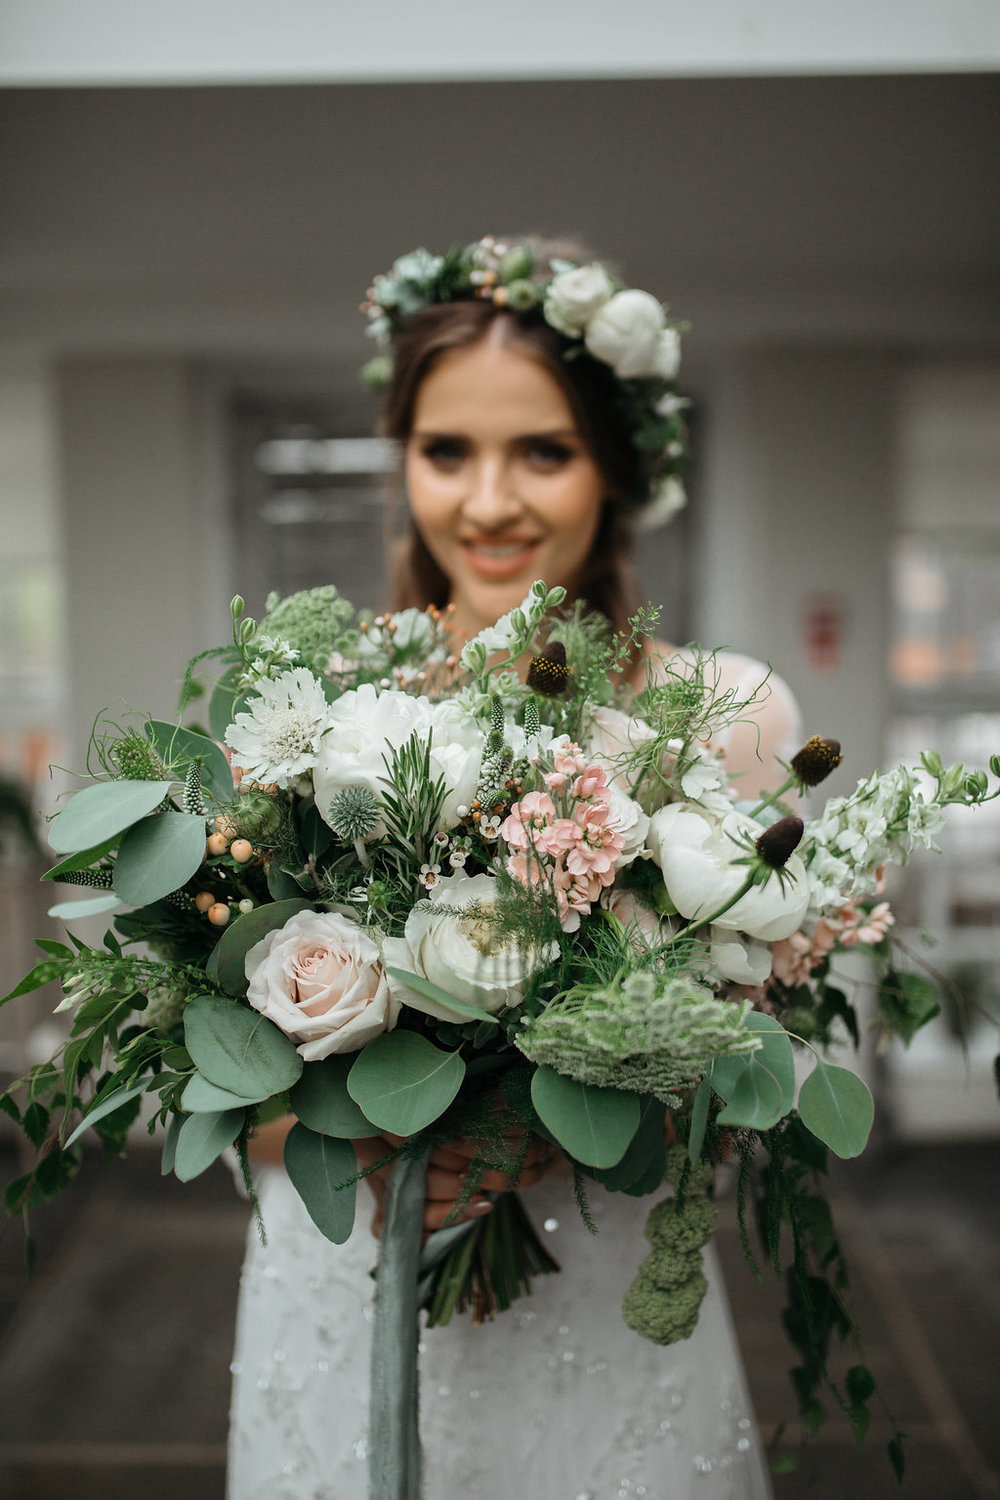 Boho-chic florals by Mrs Umbels | The Swet Stuff